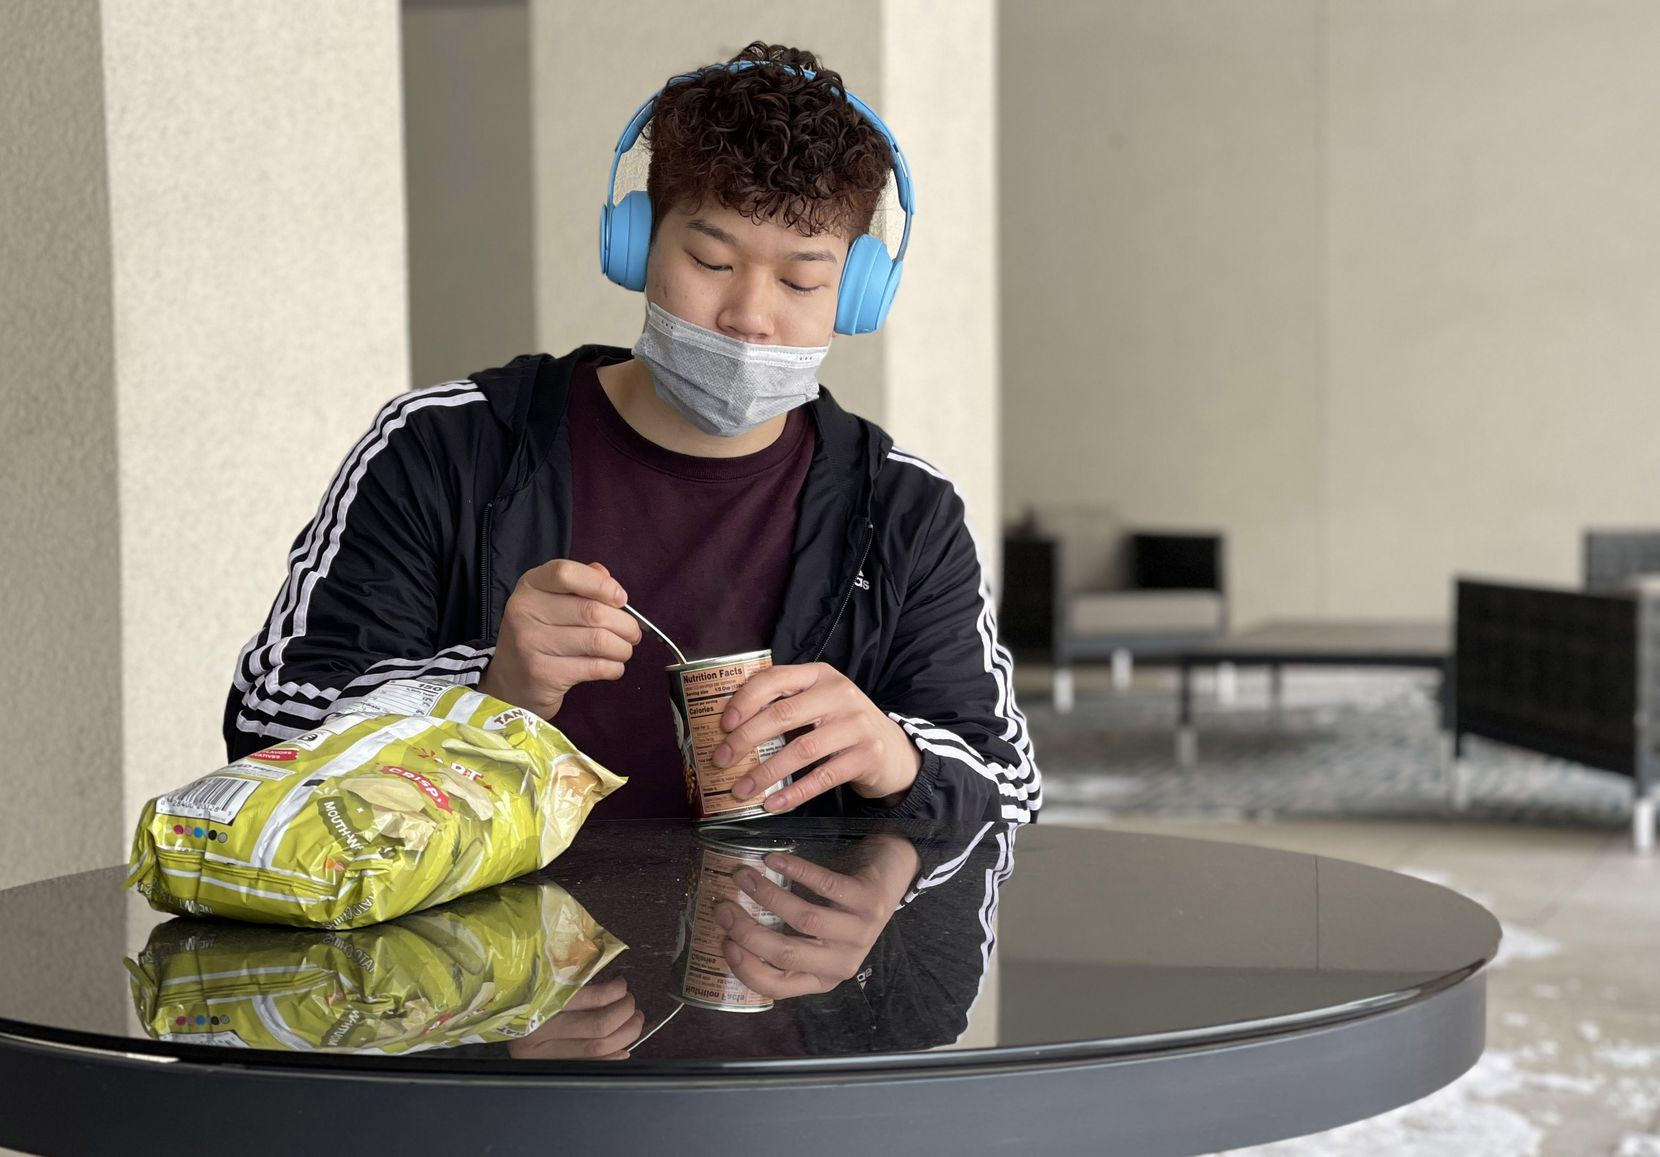 Jacky Chan eats a can of beans he warmed up on his apartment complex's gas grill in an outside courtyard on Tuesday, February 16, 2021 in Dallas. Chan said he didn't think the historic snowstorm that left millions without power would be this bad.